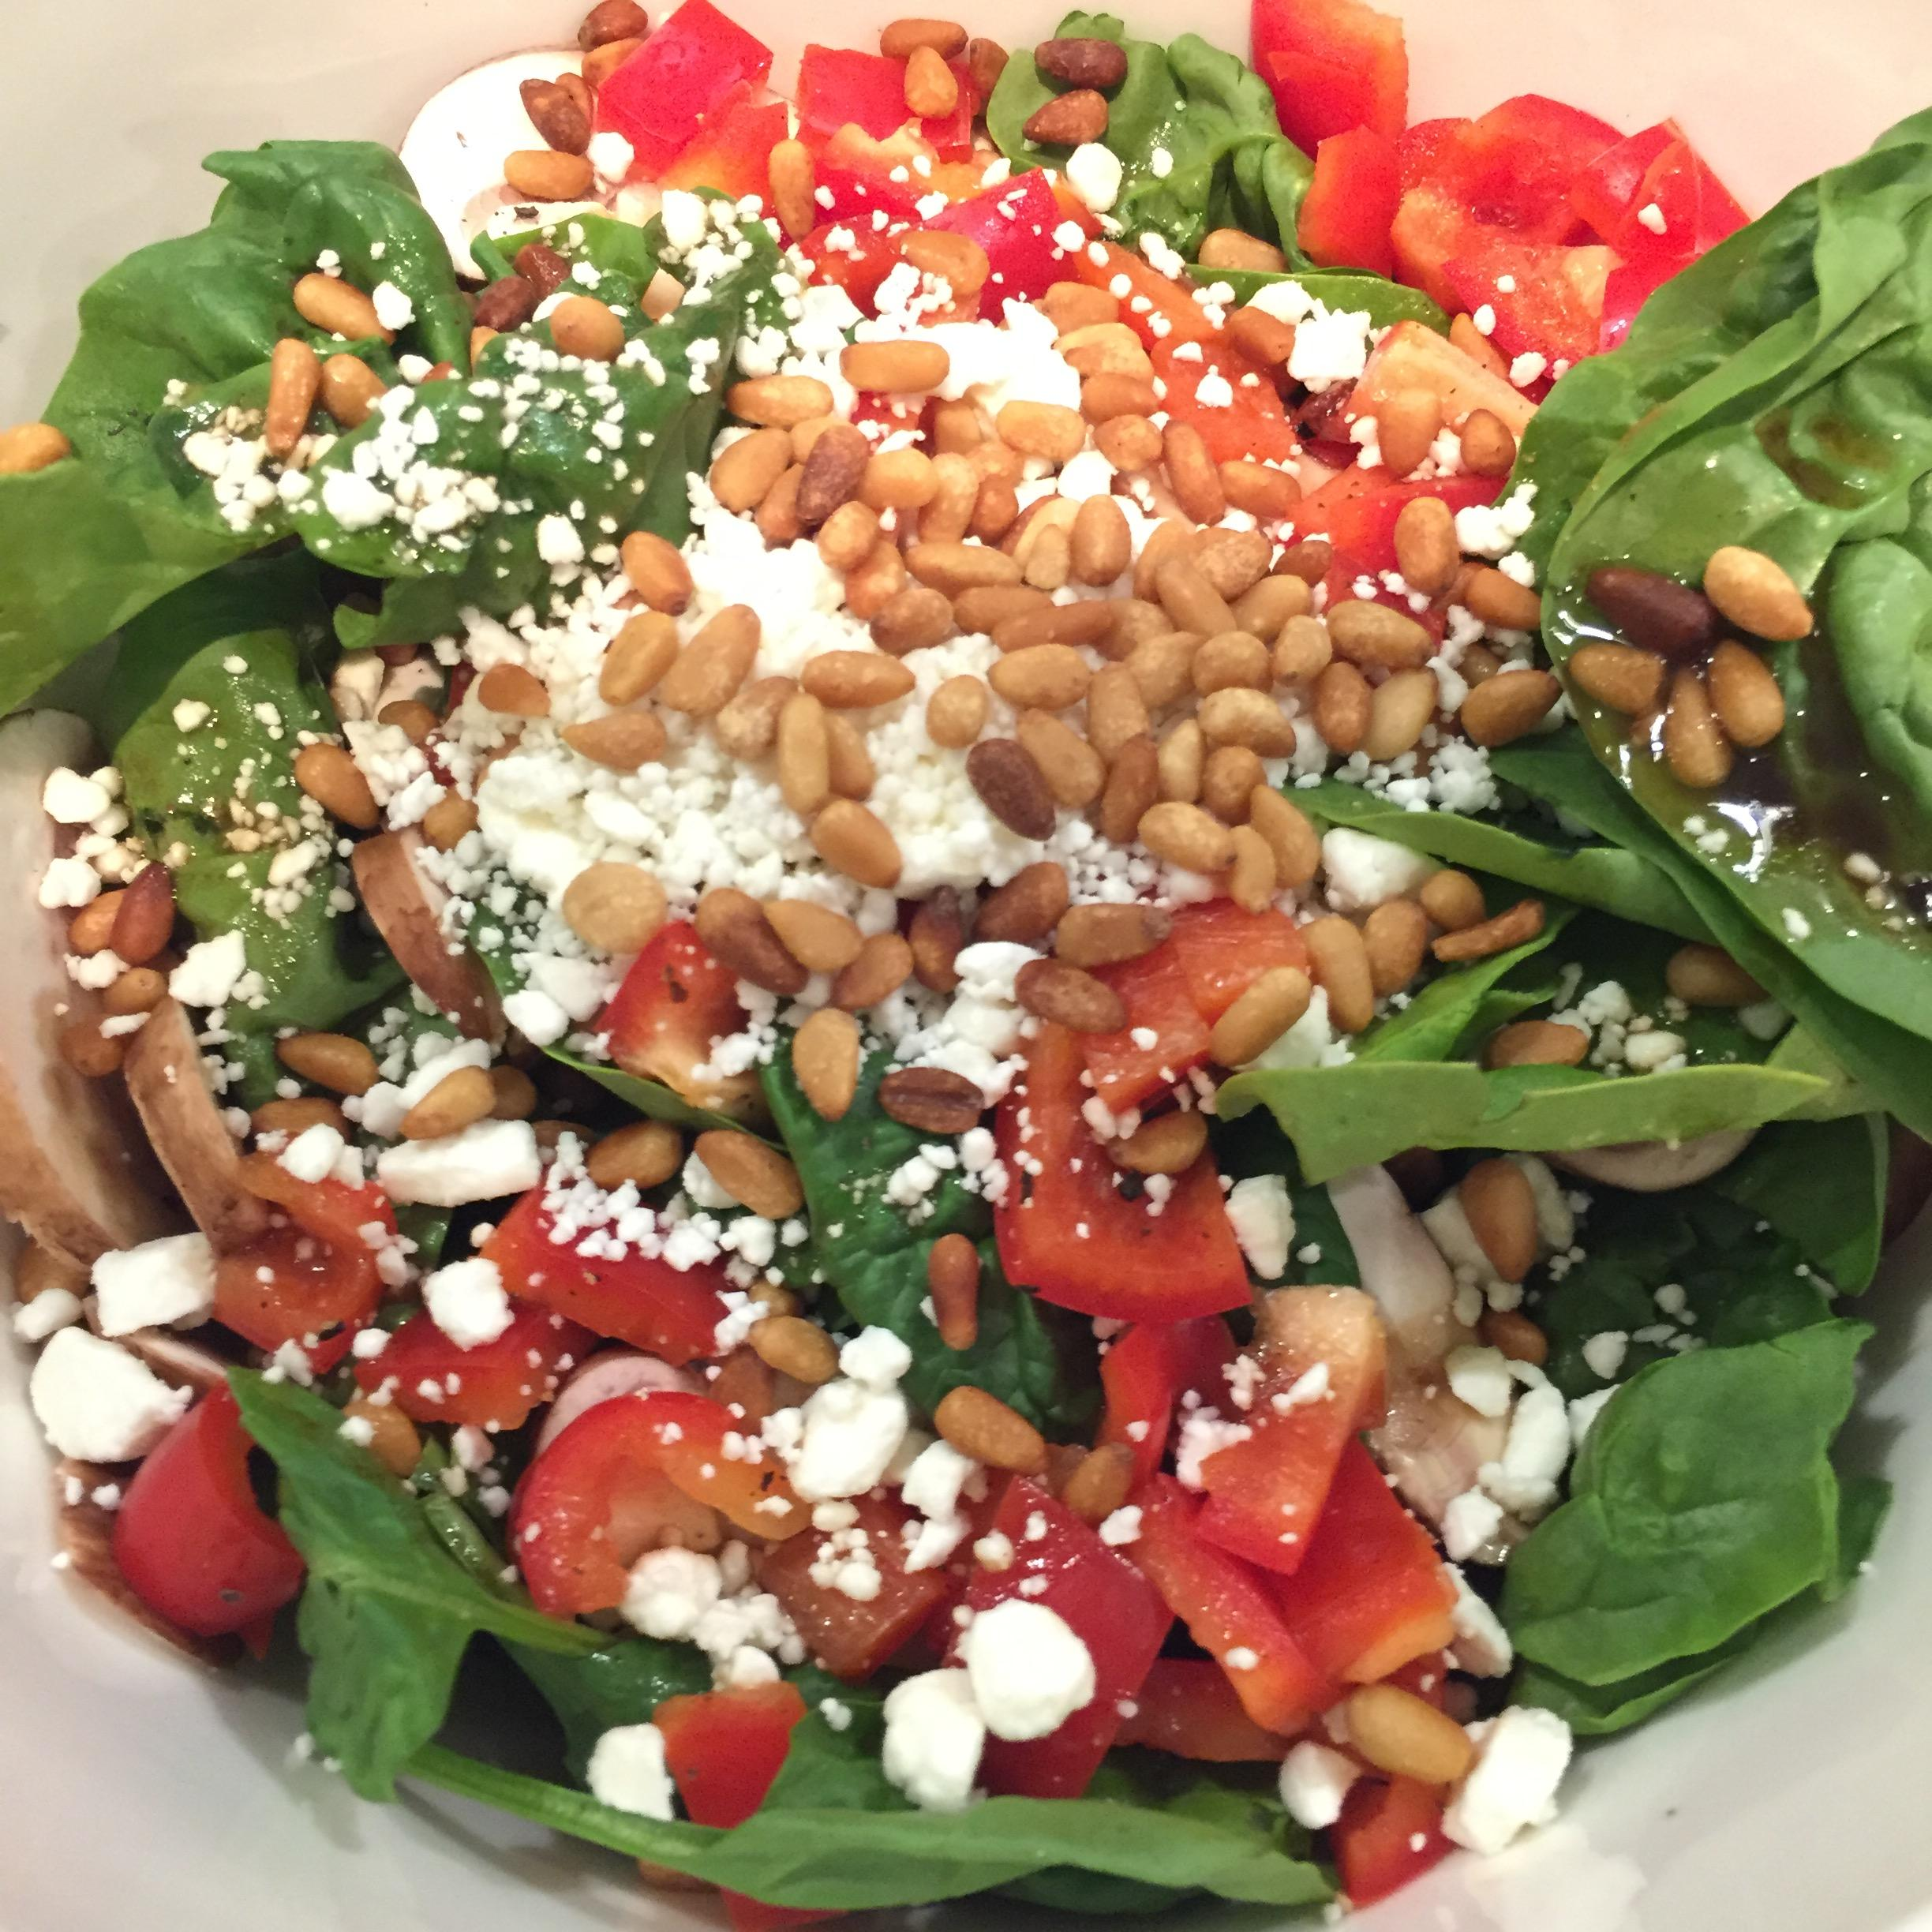 Spinach Salad with Red Bell Peppers, Toasted Pine Nuts, Crumbled Feta